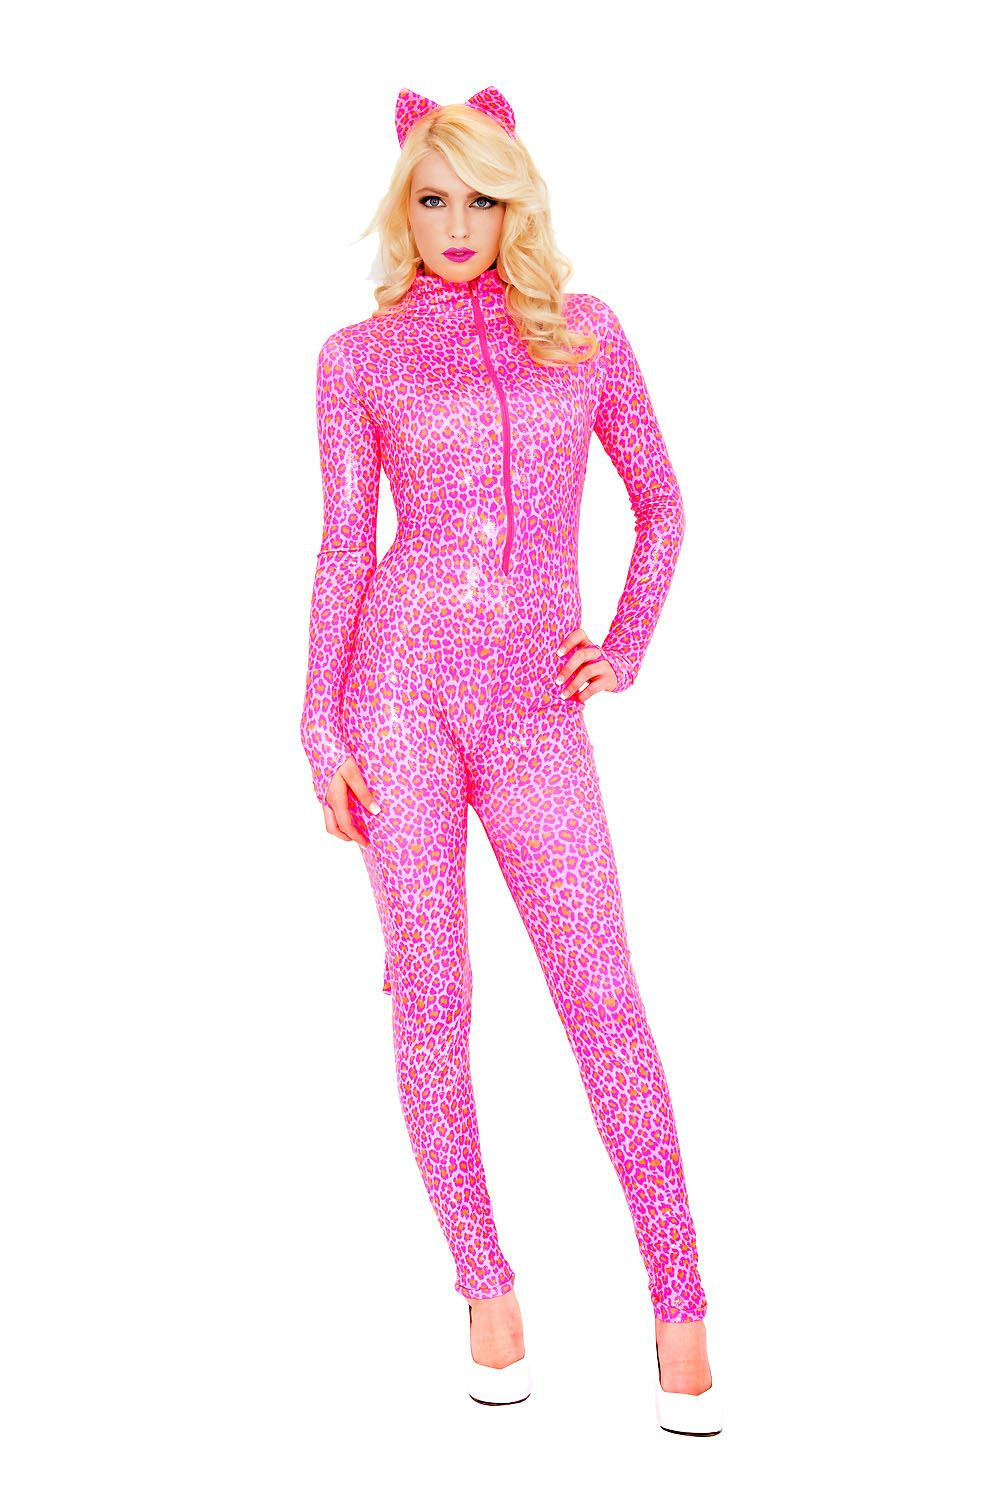 c15dd25c2d0c ... Adult Pink Cheetah Woman Costume. Click here to view Large Image